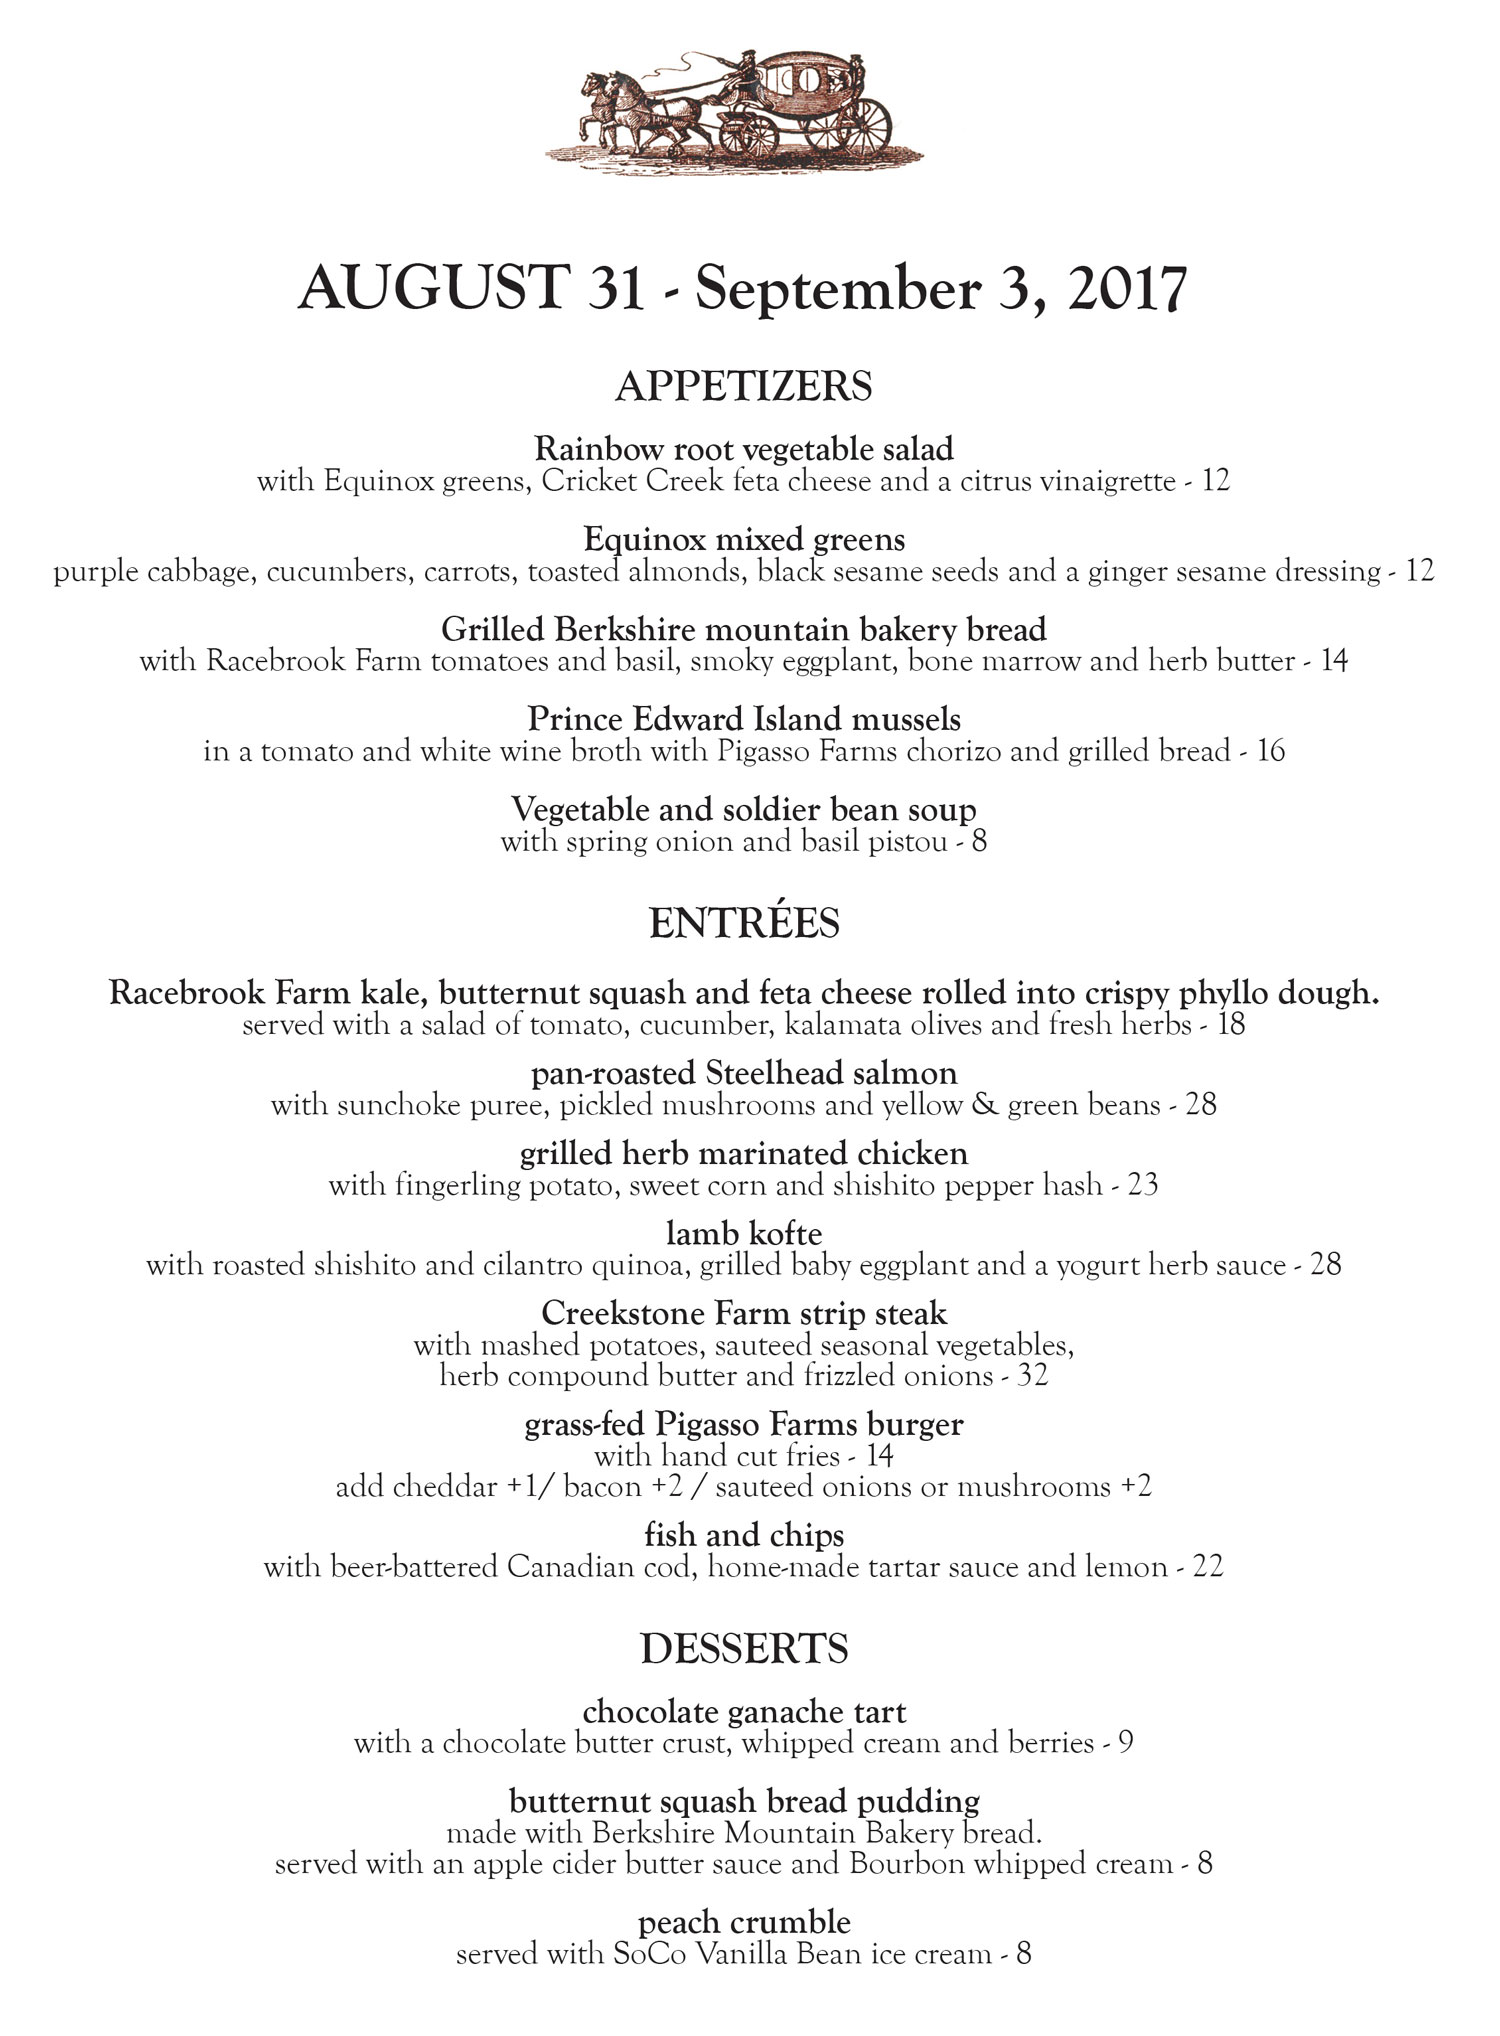 The Stagecoach Tavern Dinner Menu Aug. 31 - Sept. 3, 2017 by Chef Laurel Barkan